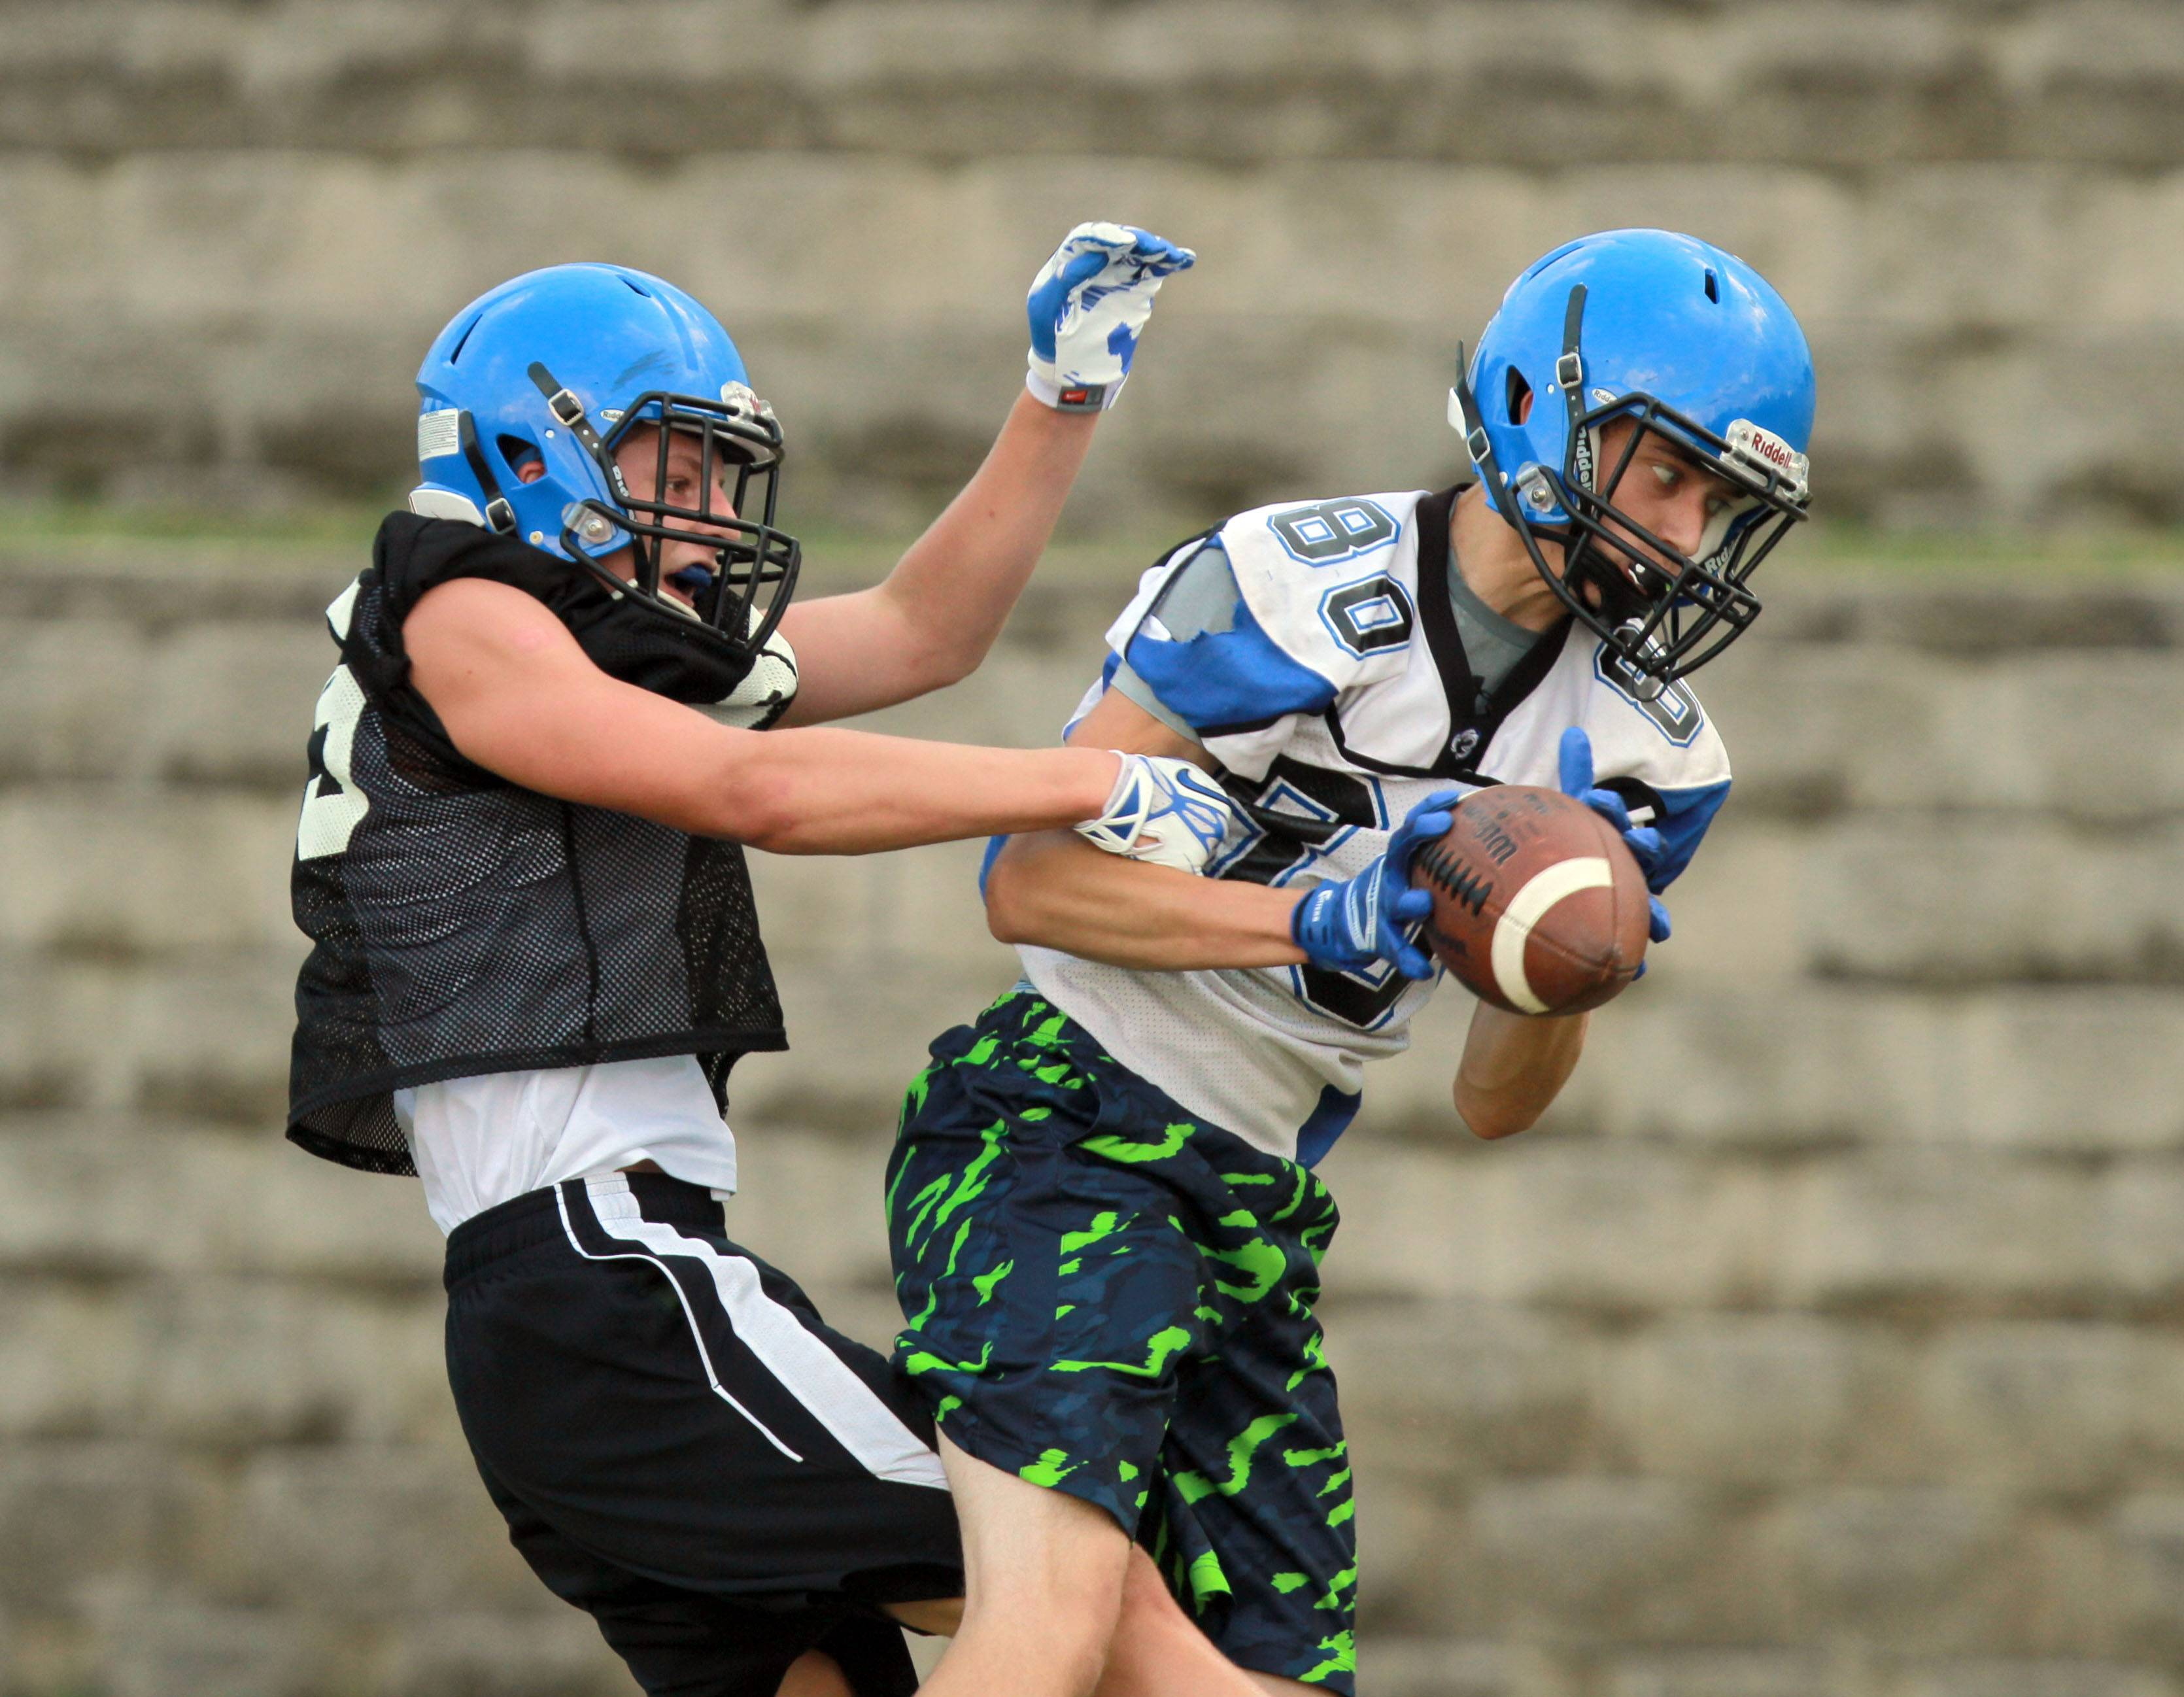 DJ Smith, right, and Matt Lawson go up for a pass during football practice Monday at Lake Zurich.